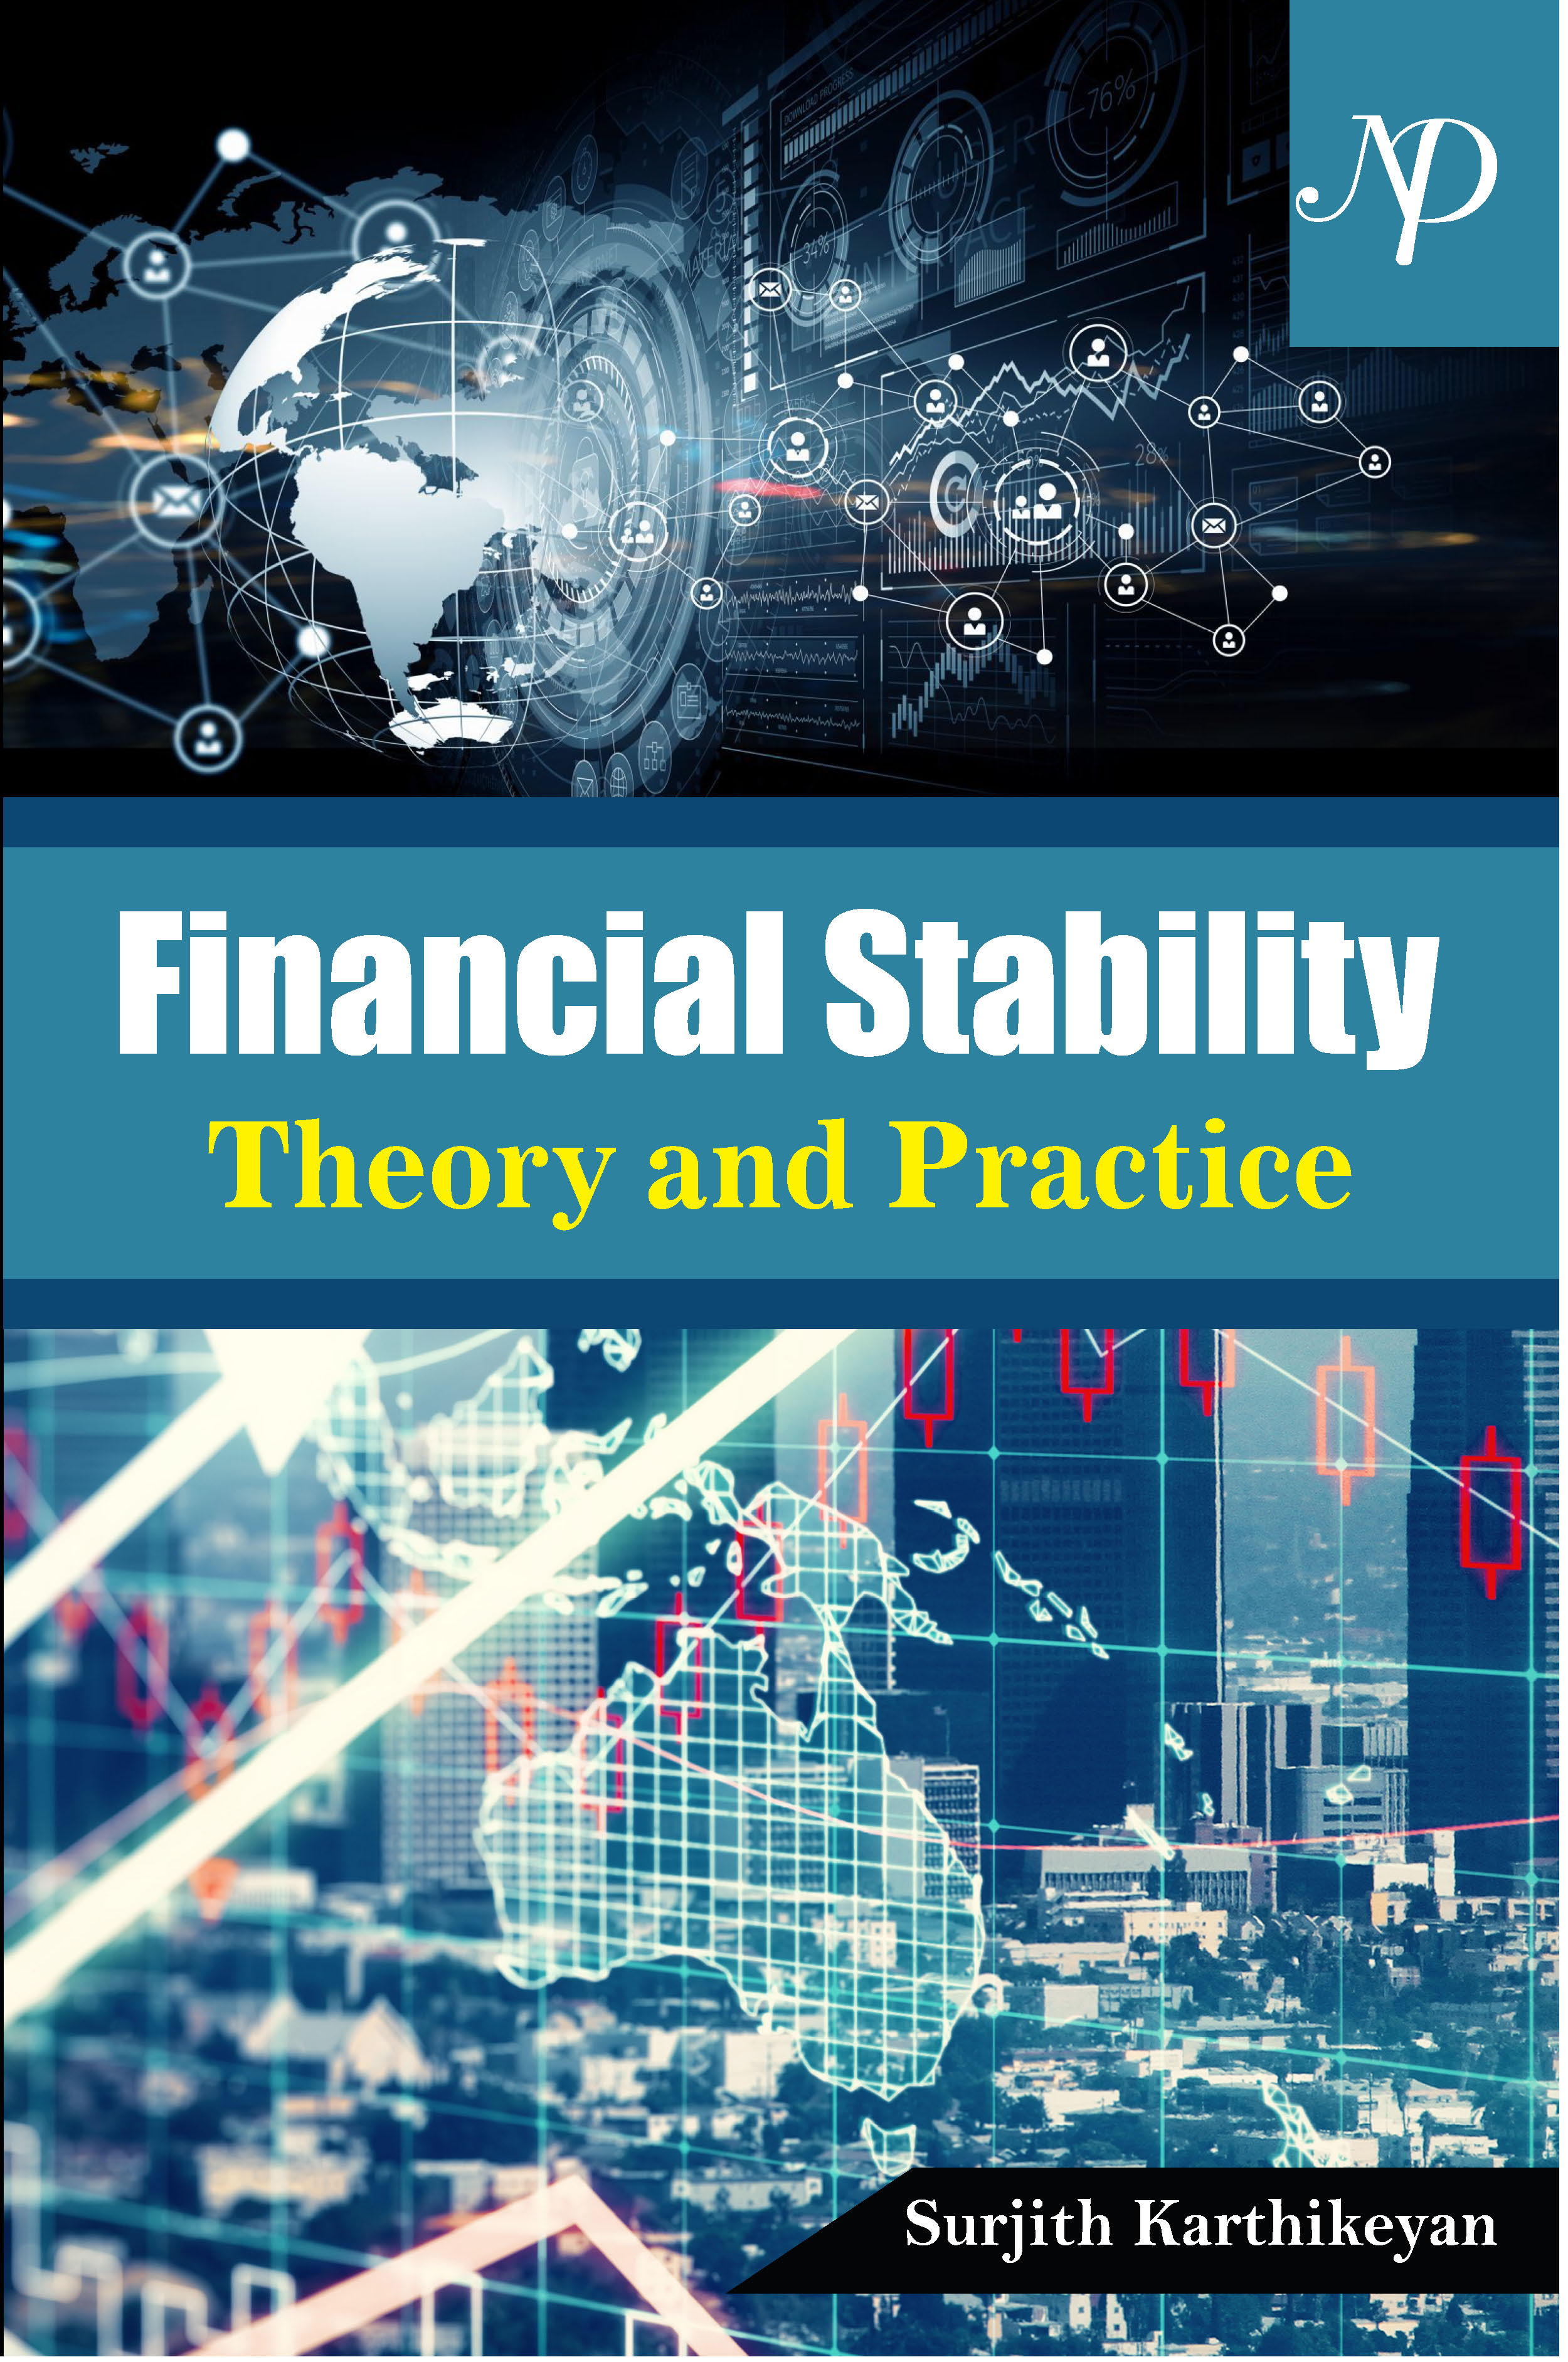 Financial Stability Theory and Practice.jpg